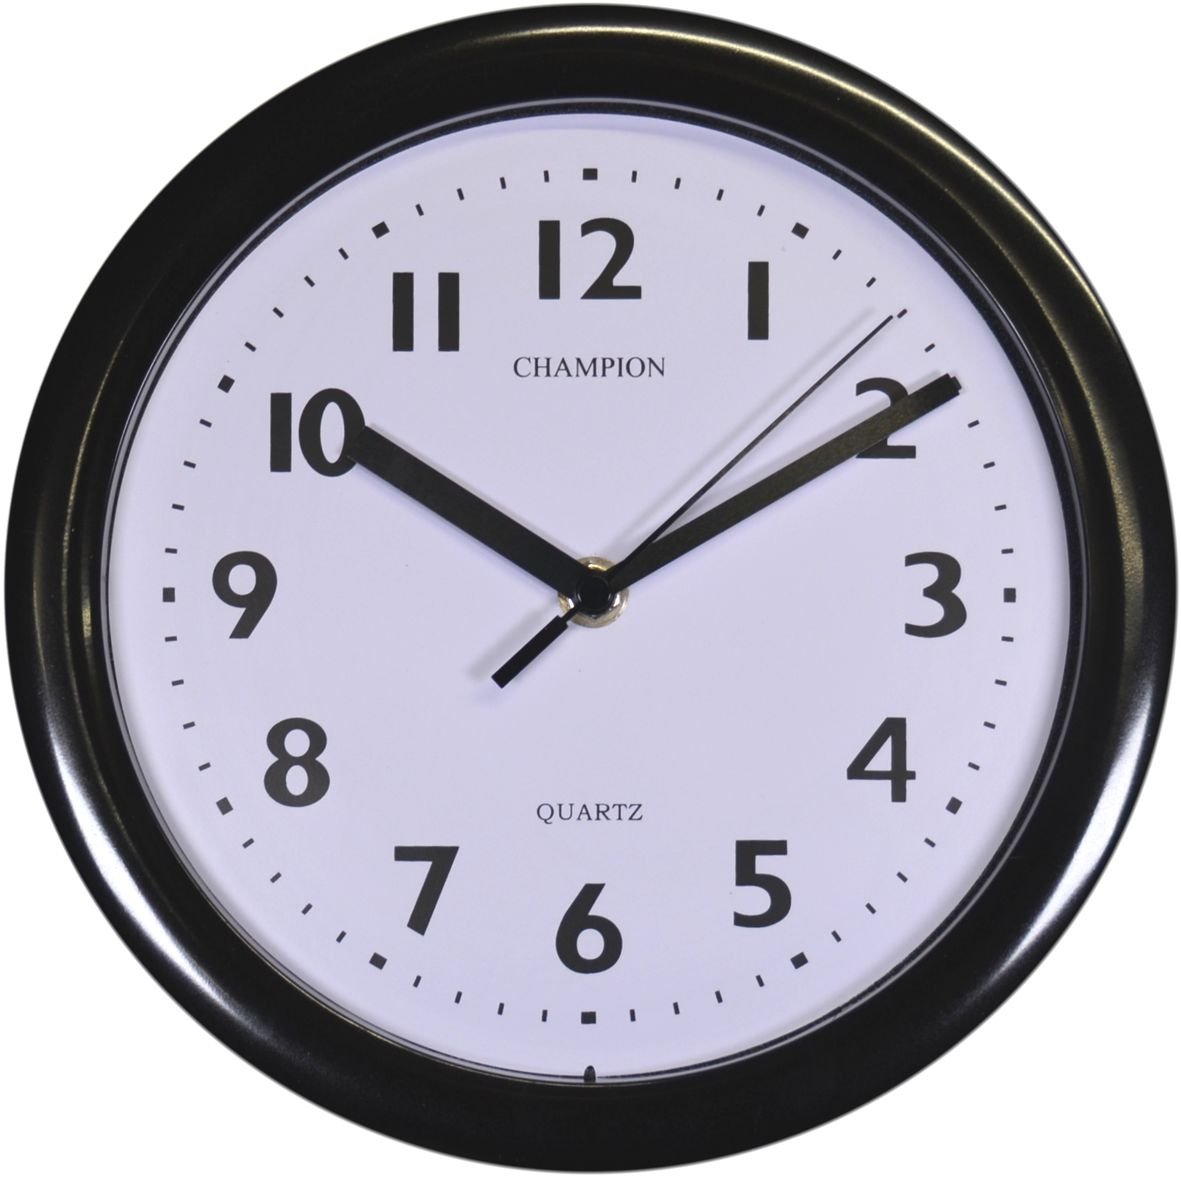 Kitchen Quartz Clock 9'' Black 515 CHAMPION